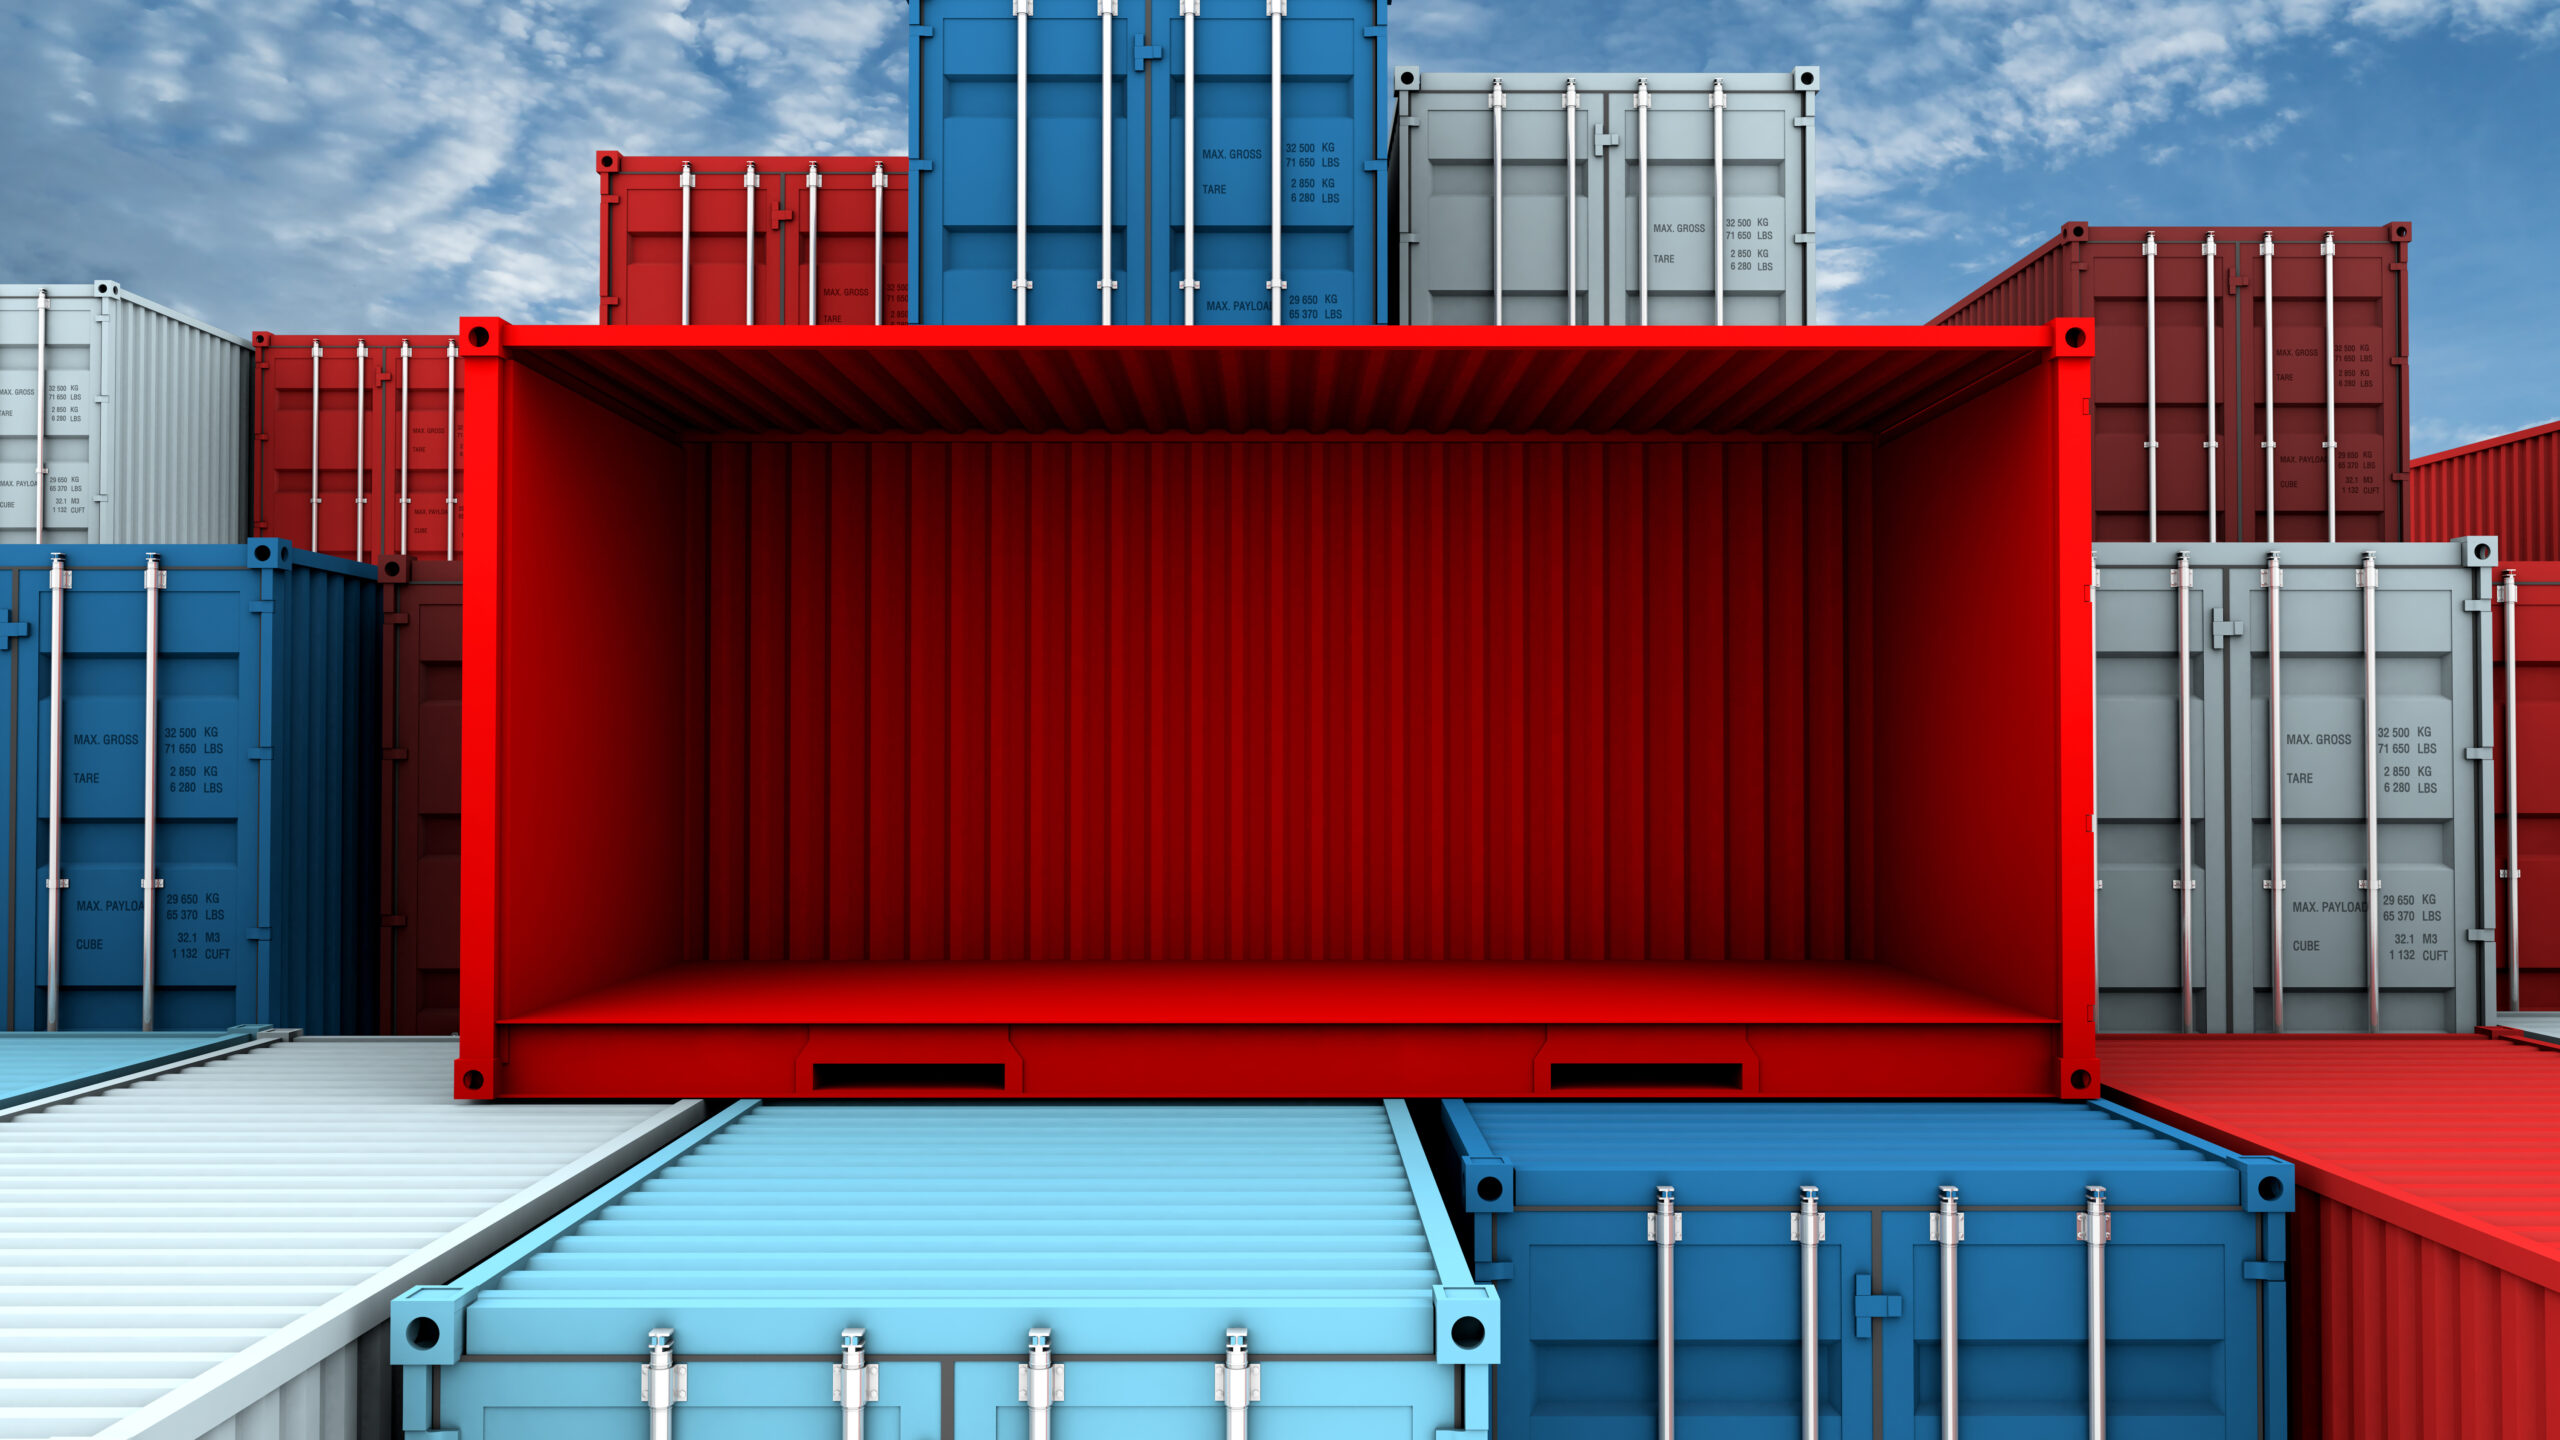 Rancher Labs and Weka Bring Enterprise Scale to Containerized Stateful Applications